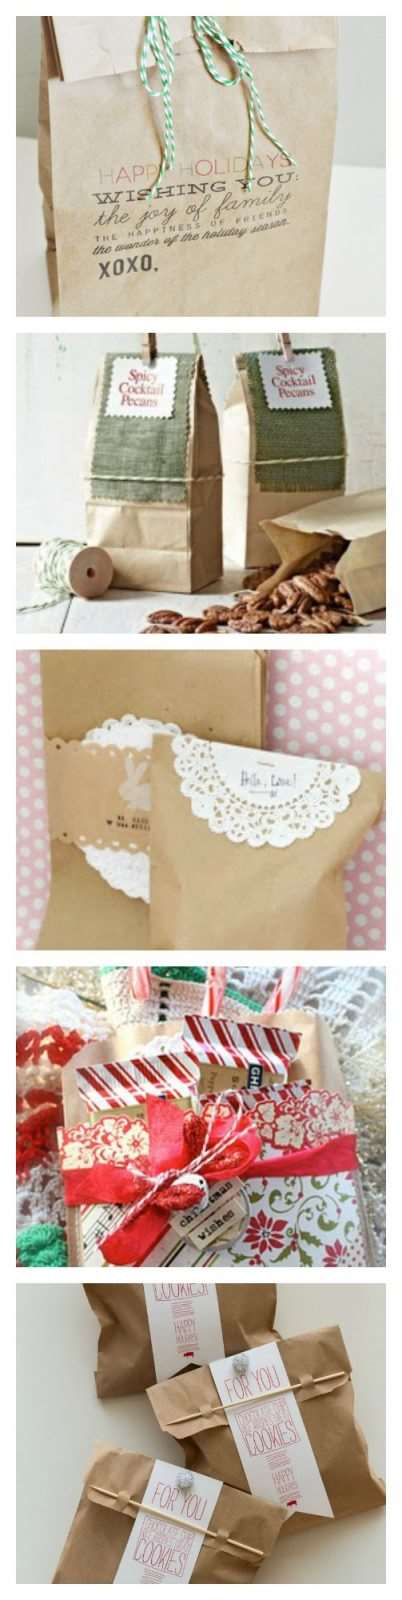 Homemade Food Gift Packaging: 5 Ways to Dress Up a Brown Bag